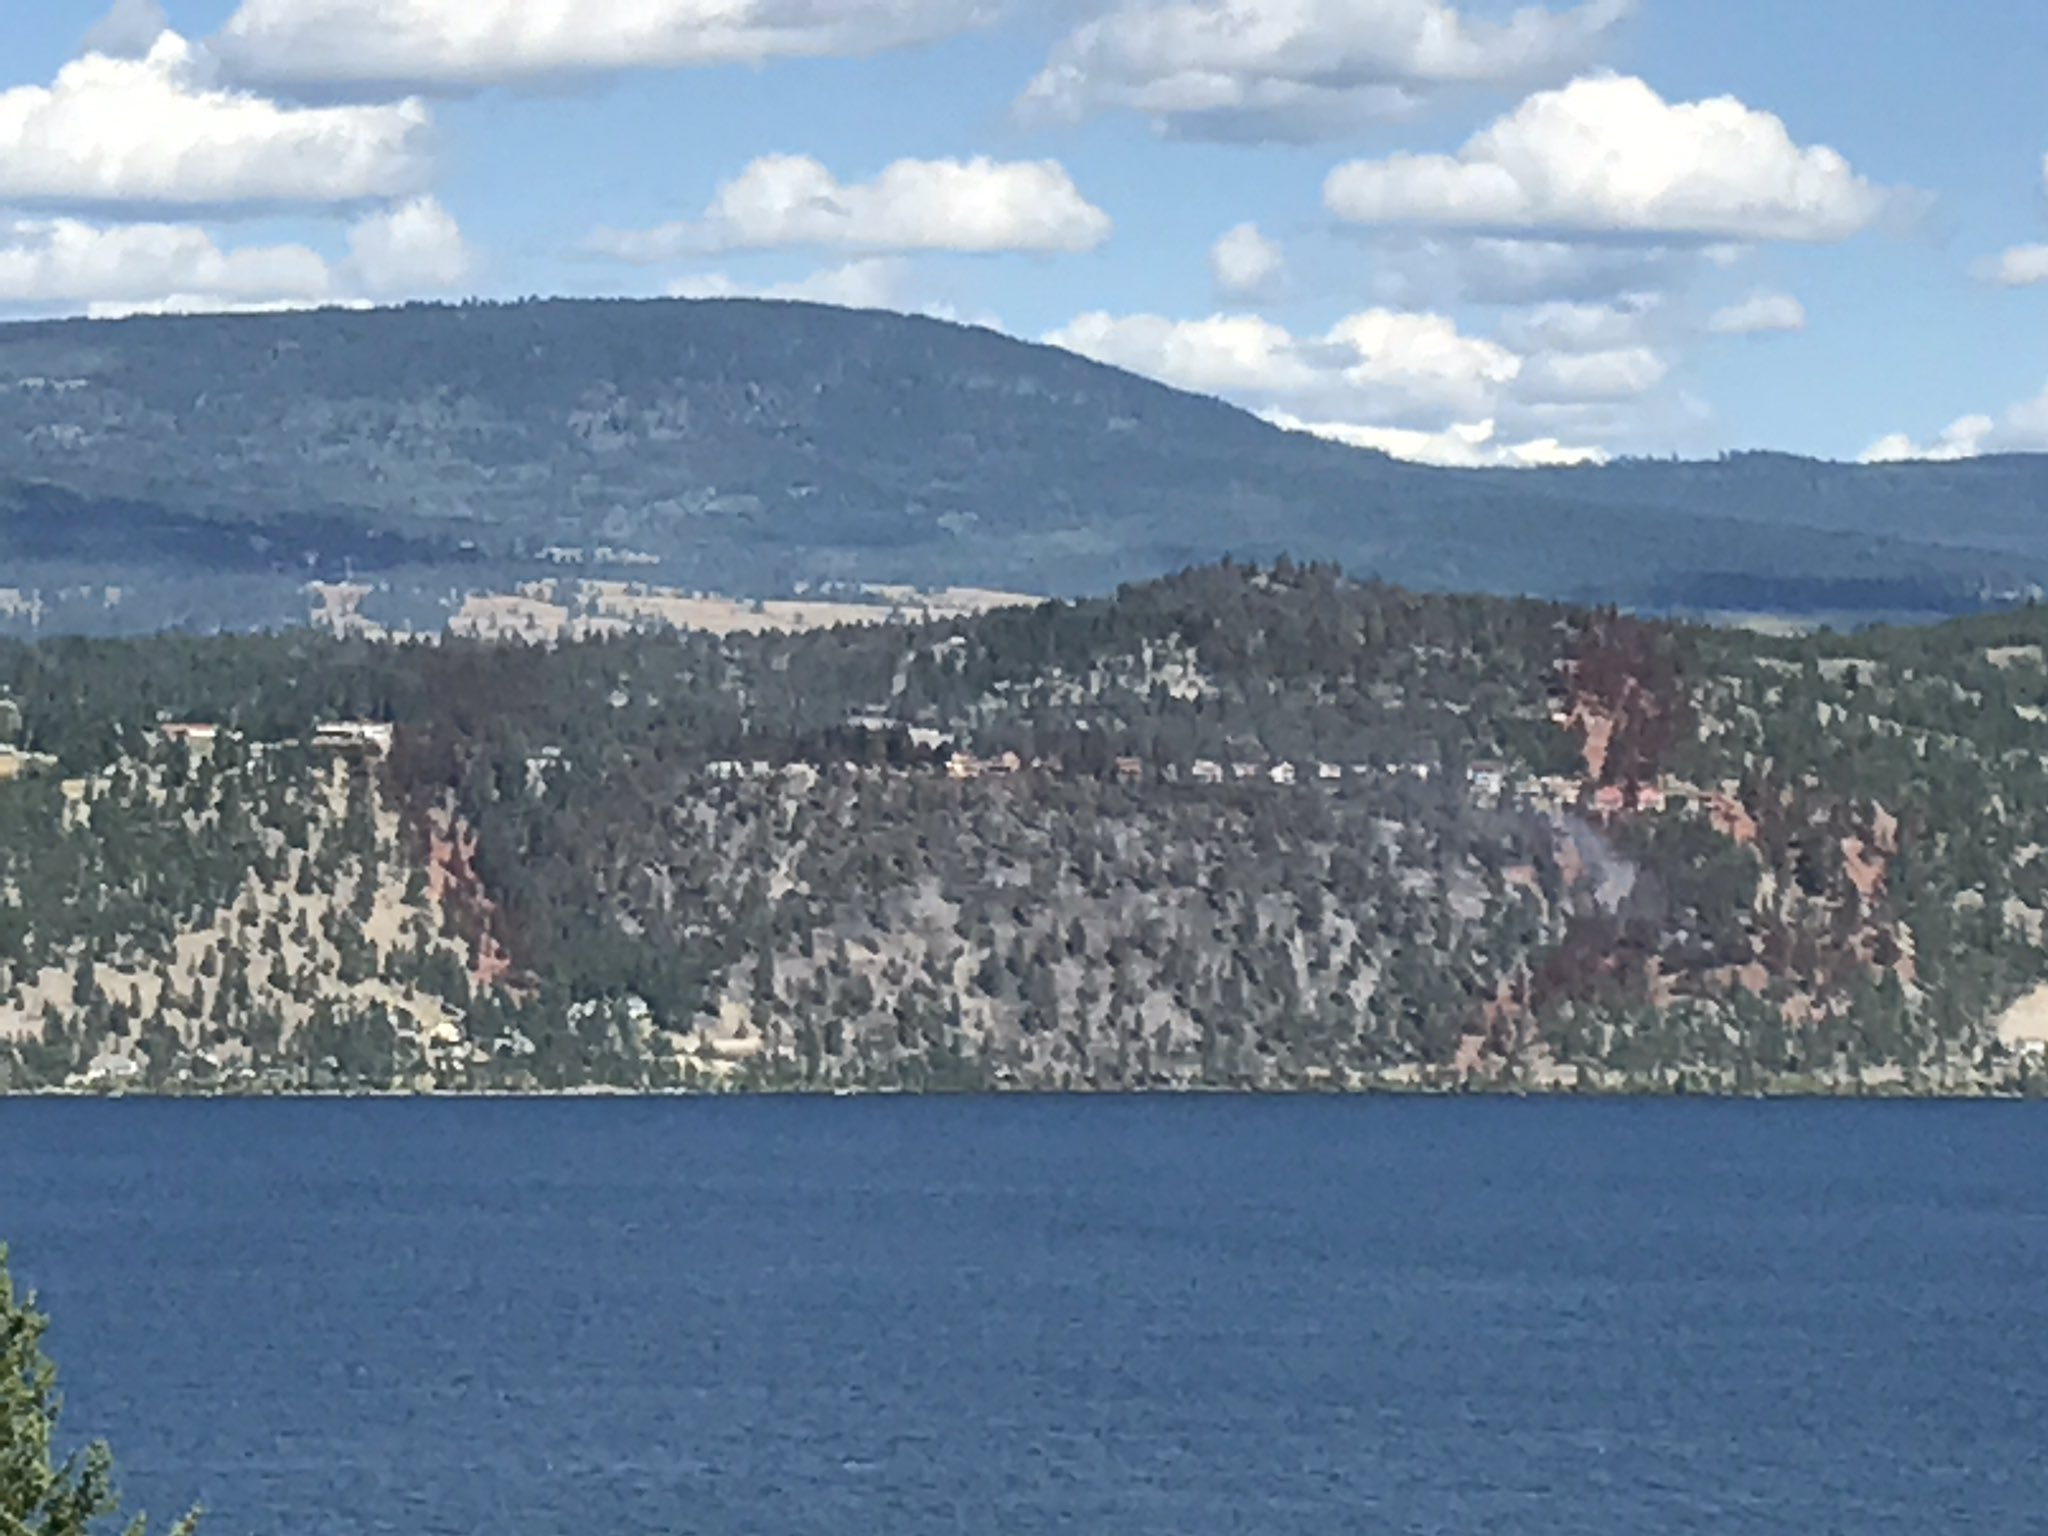 1,300 Evacuees Here, Lake Country Fire 90% Contained and Kelowna Man Dies While Hiking